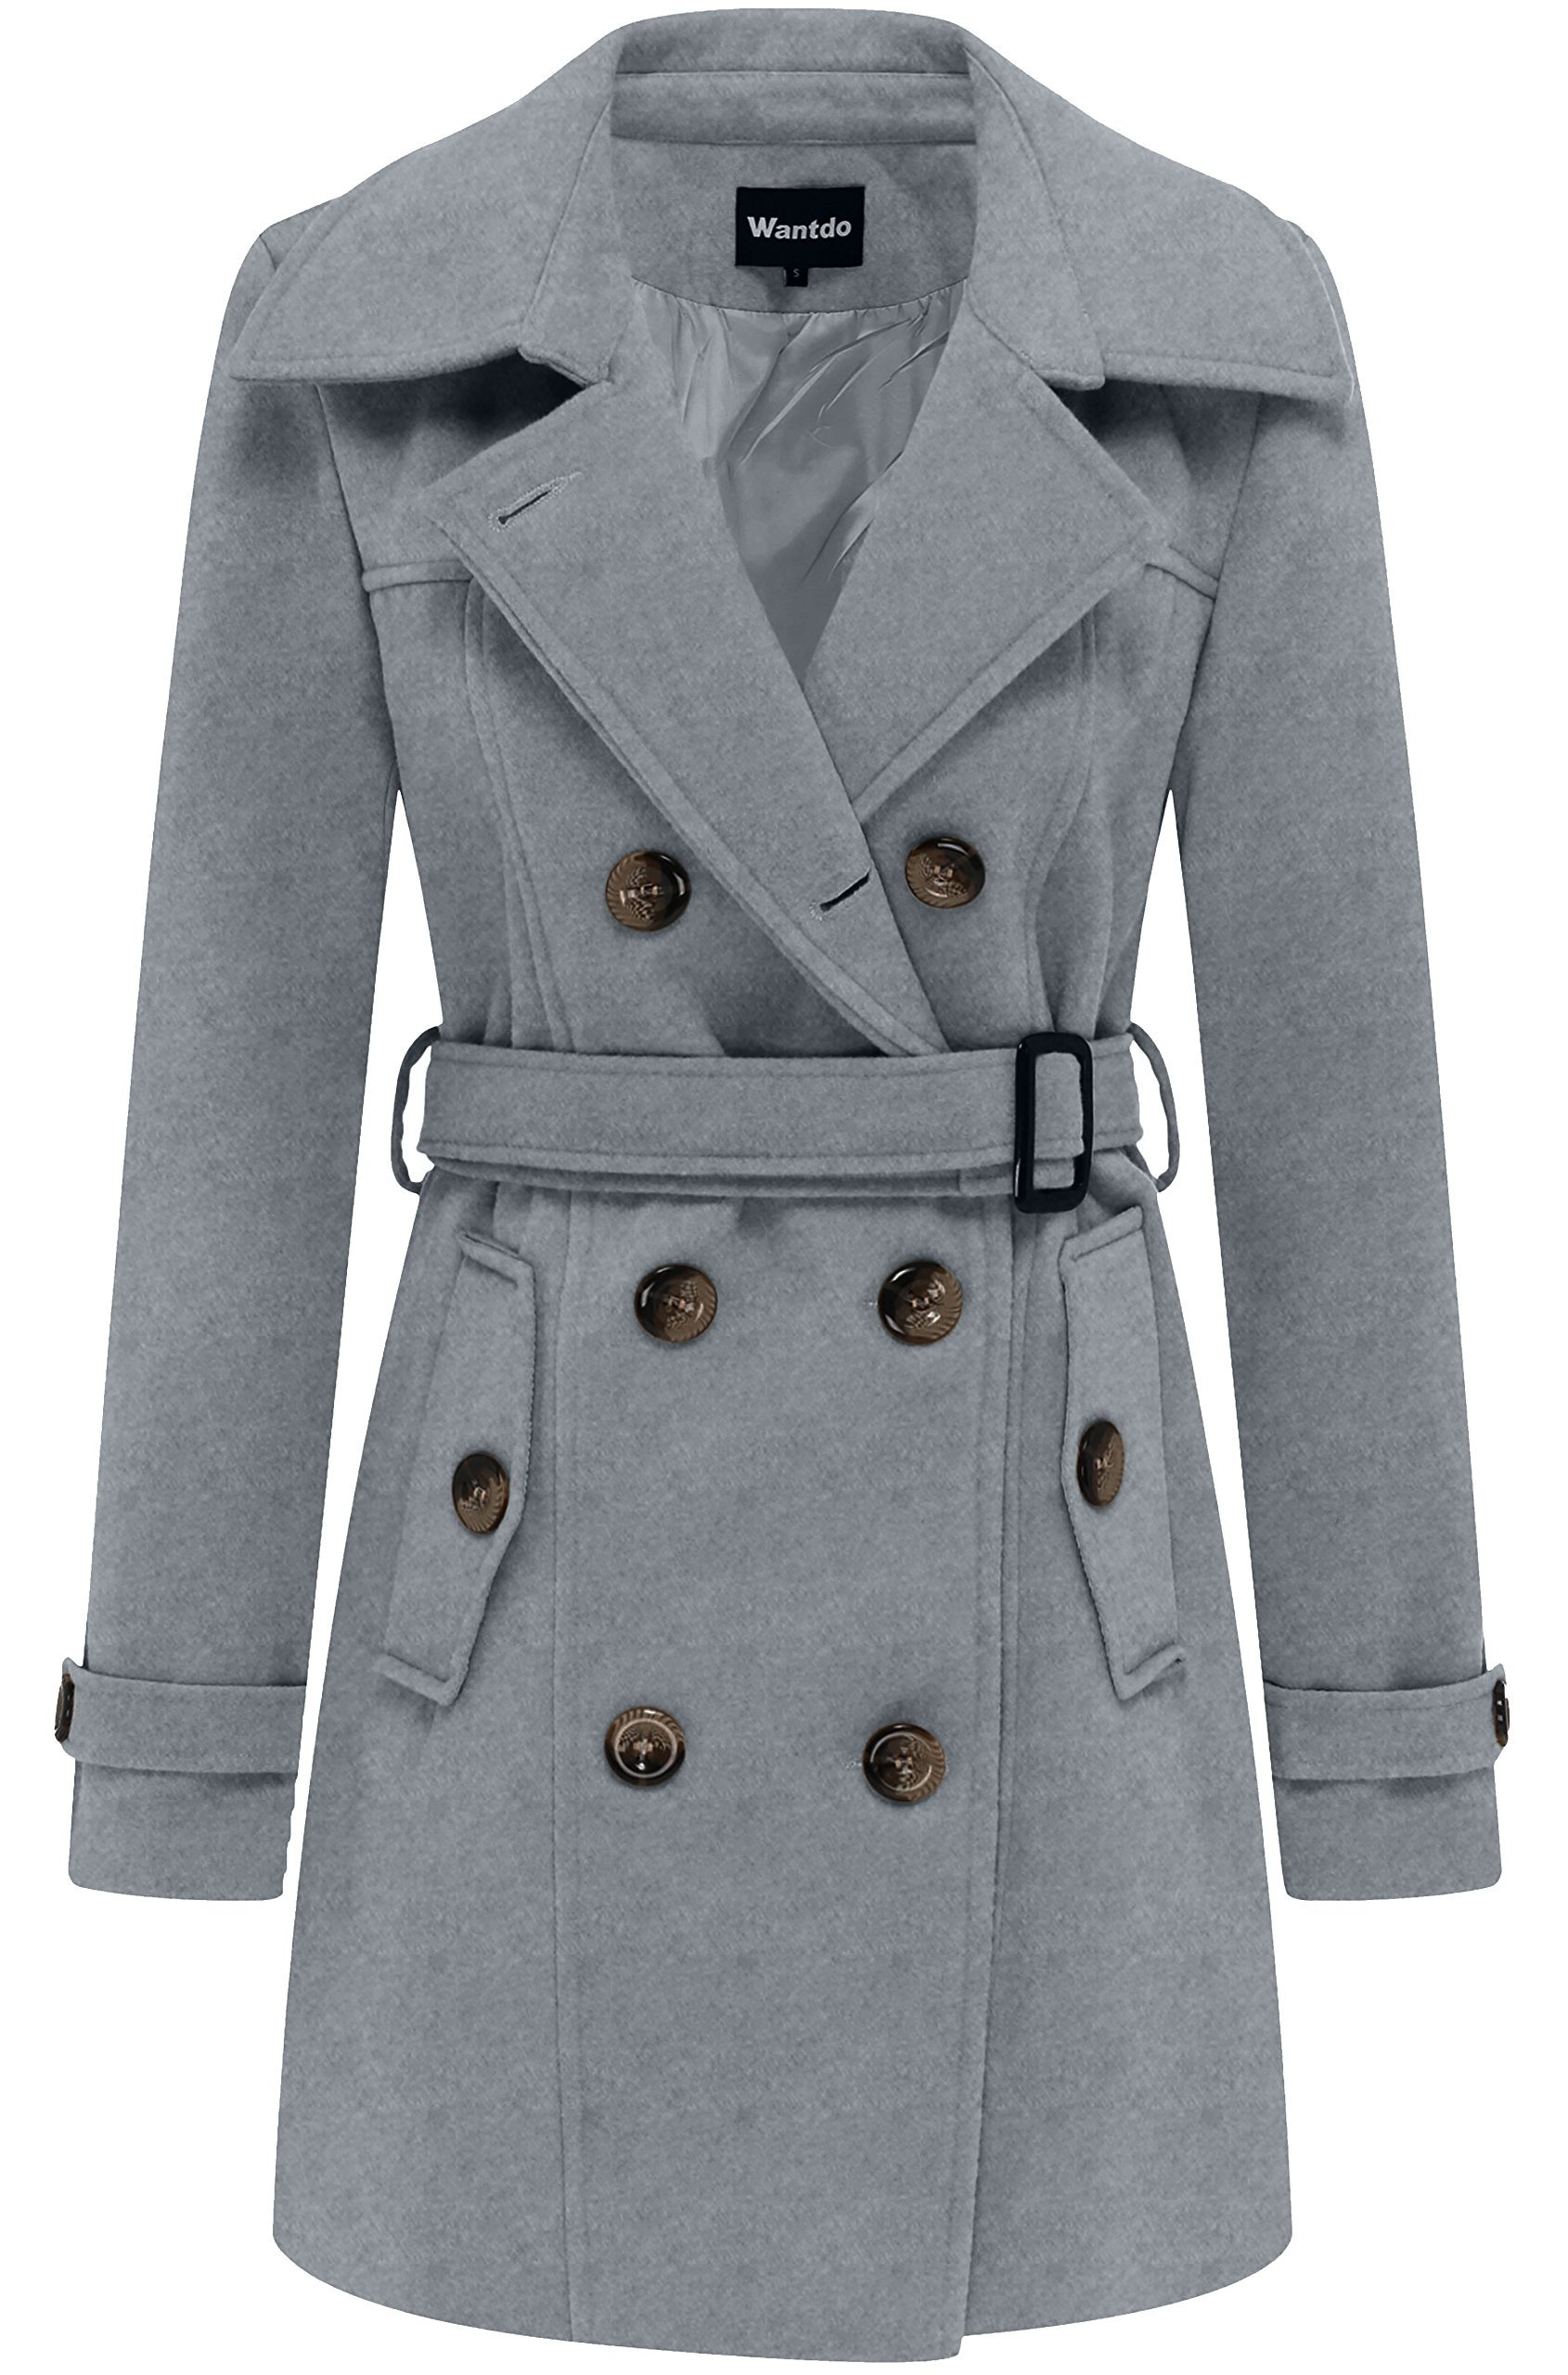 Wantdo Women's Double Breasted Pea Coat with Belt US Large Grey